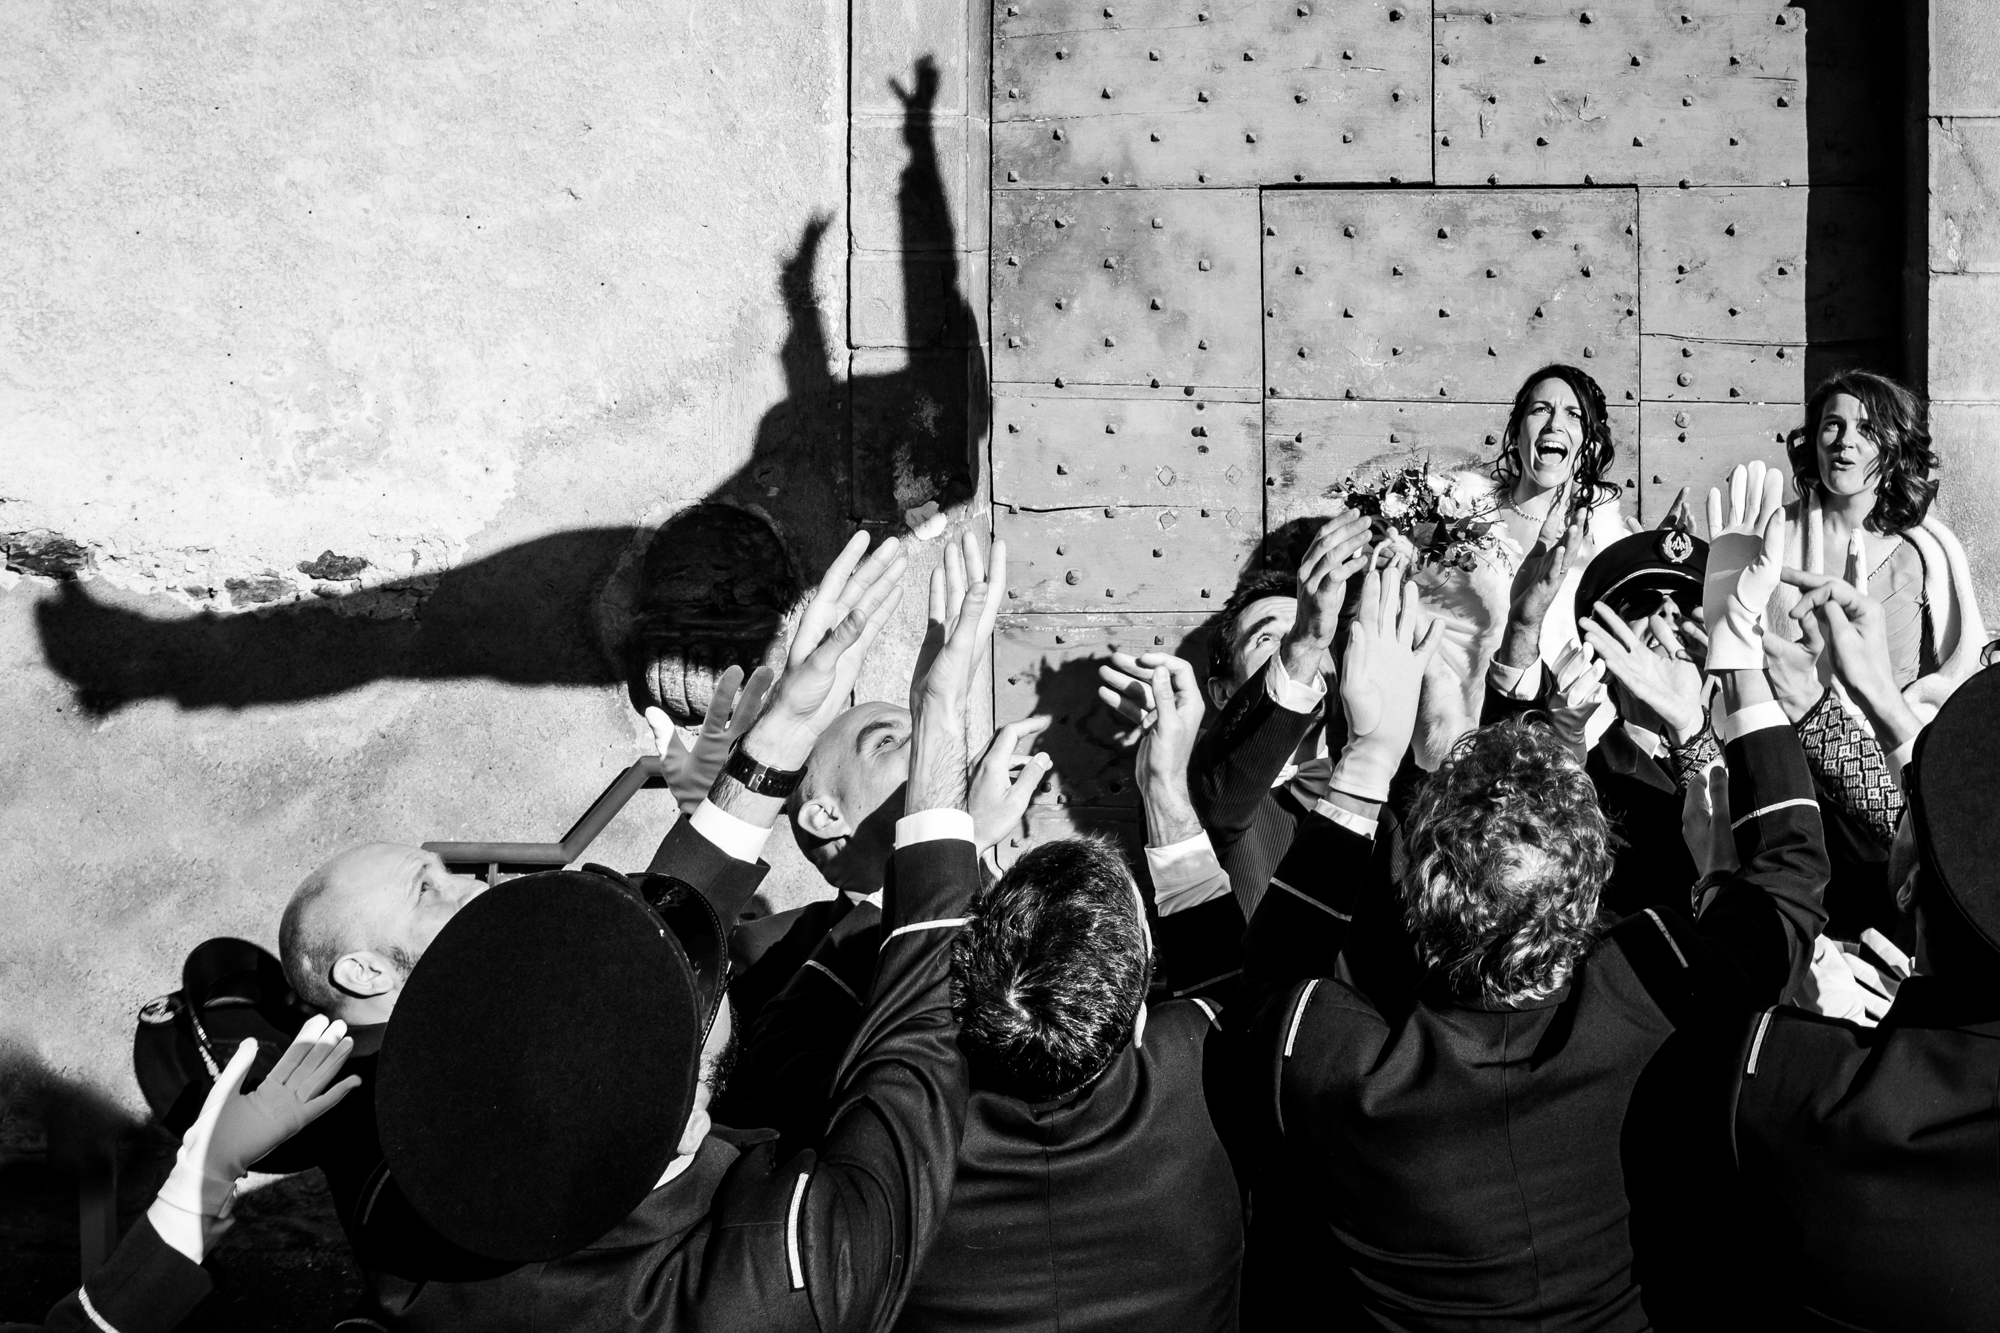 50 Best Documentary Wedding Photos of the Decade, photo by William Lambelet